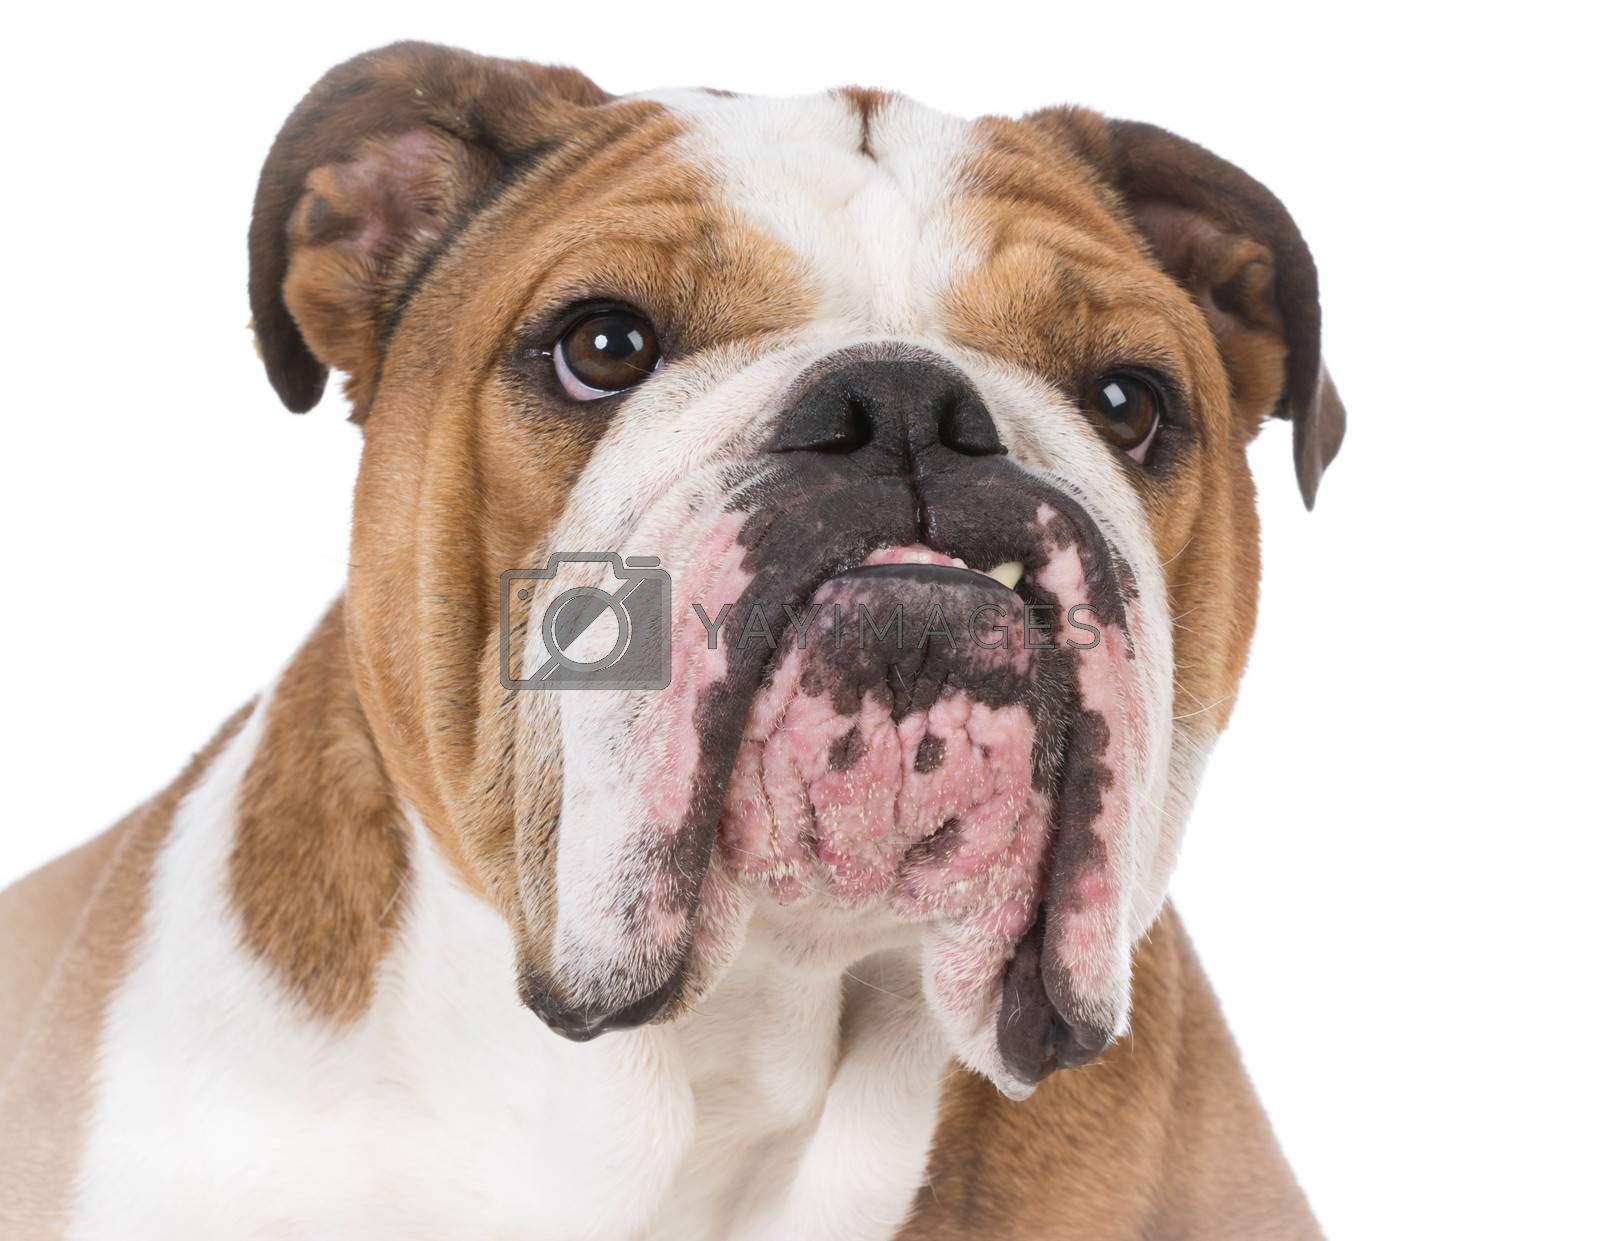 english bulldog portrait on white background